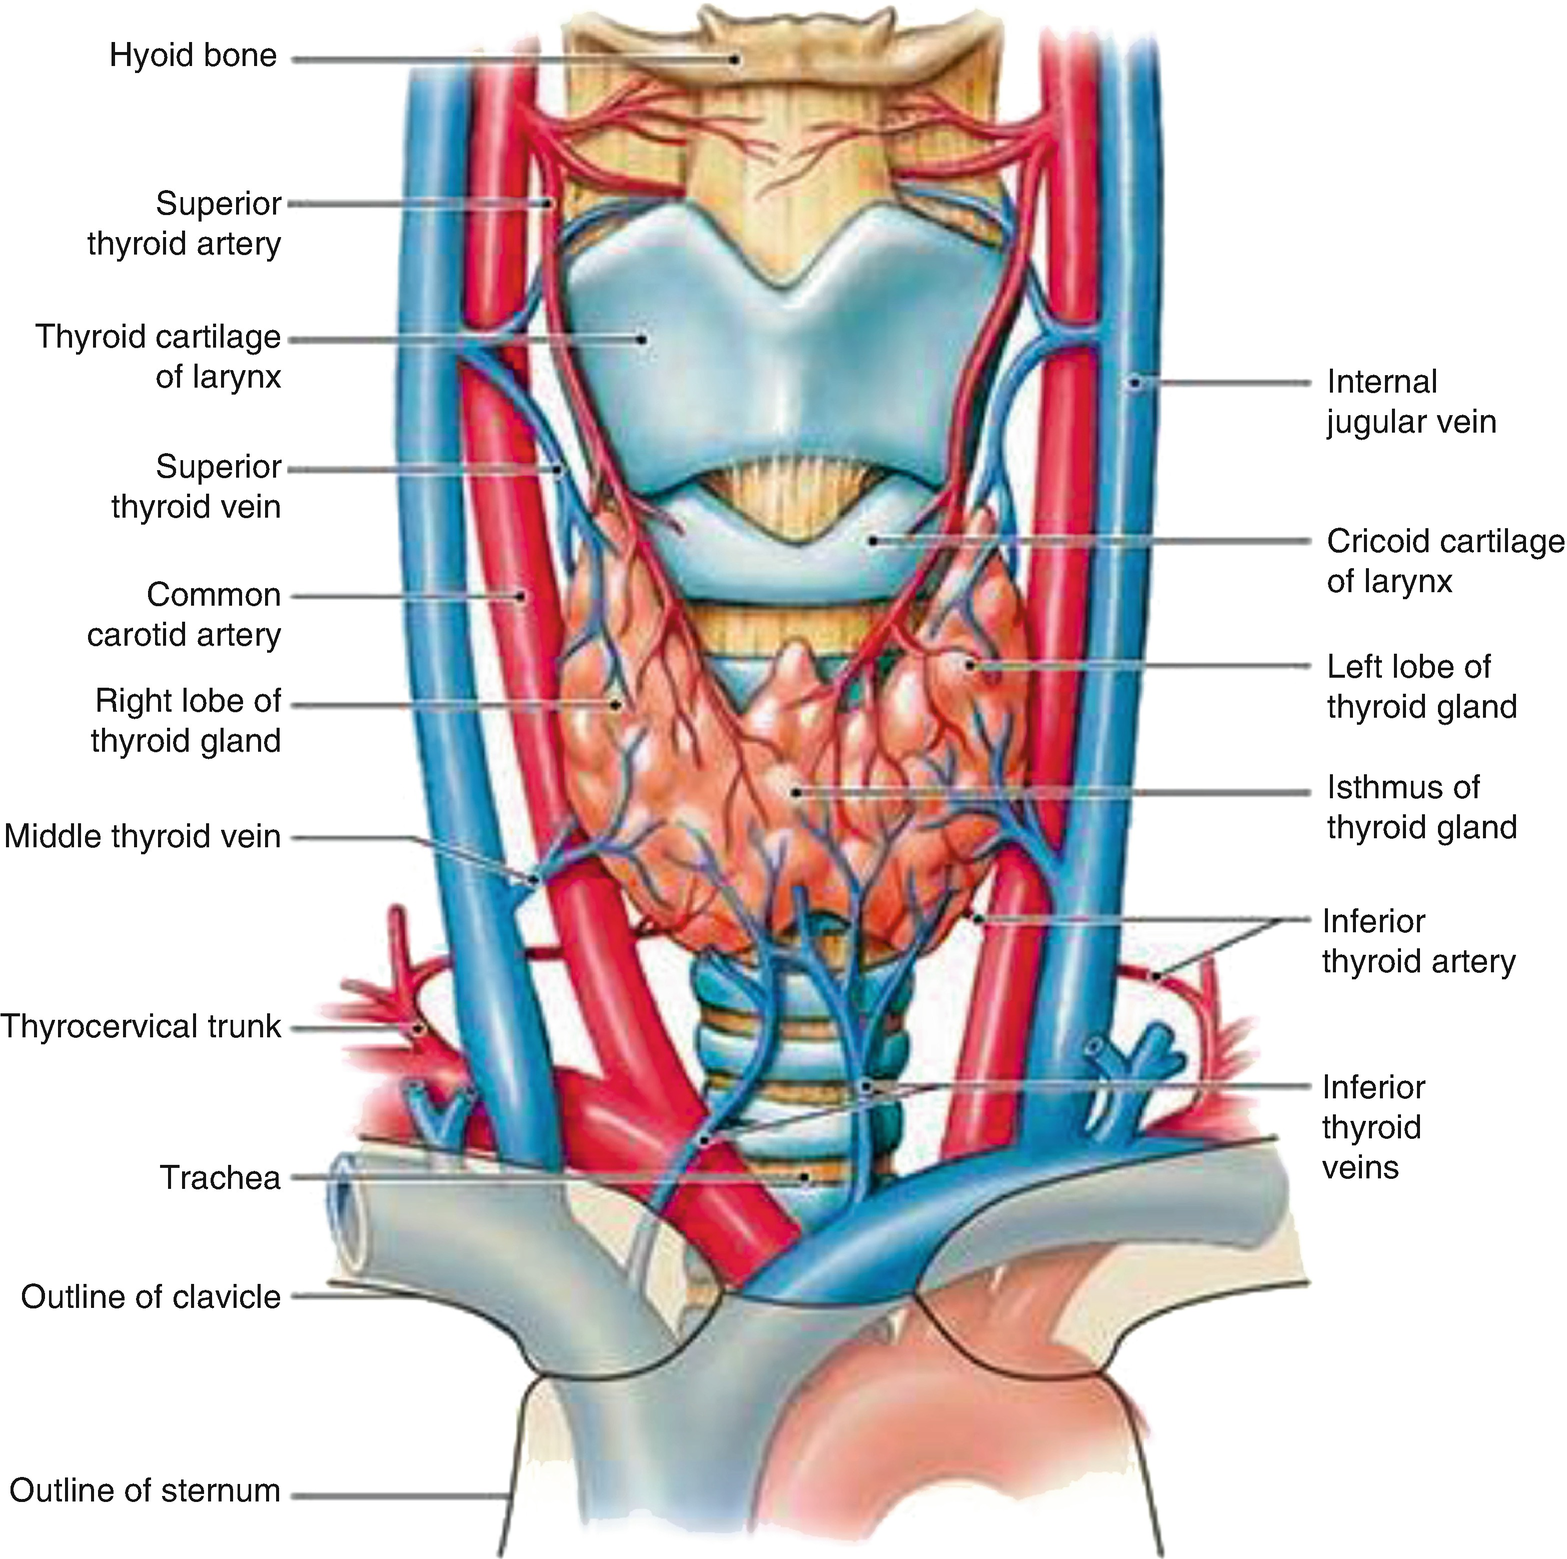 Anatomy And Physiology Of The Thyroid Gland Springerlink